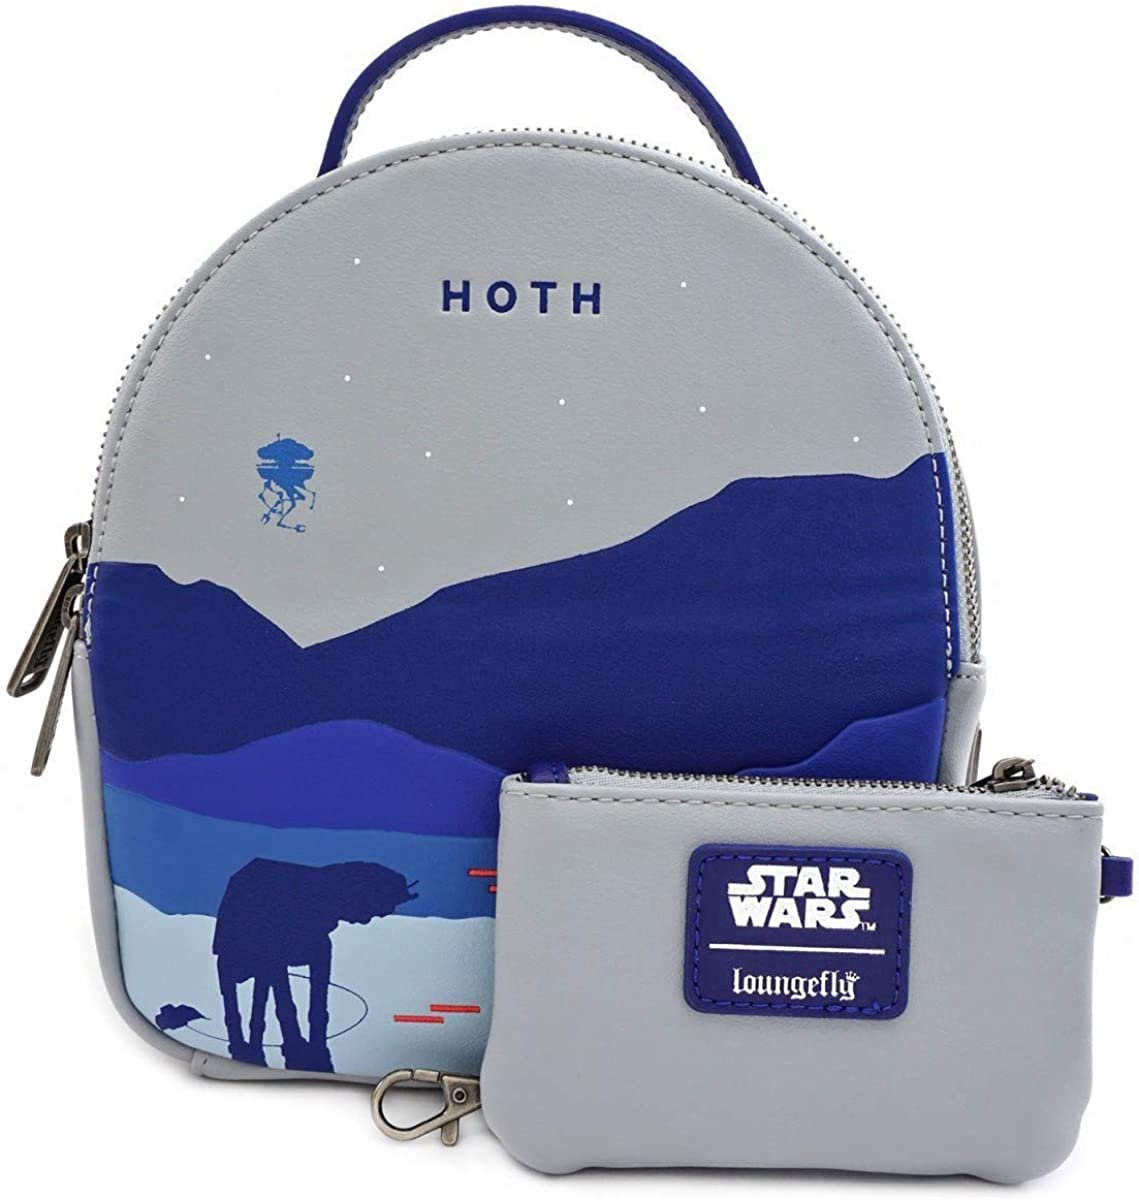 Loungefly x Star Wars Hoth Convertible Backpack Set